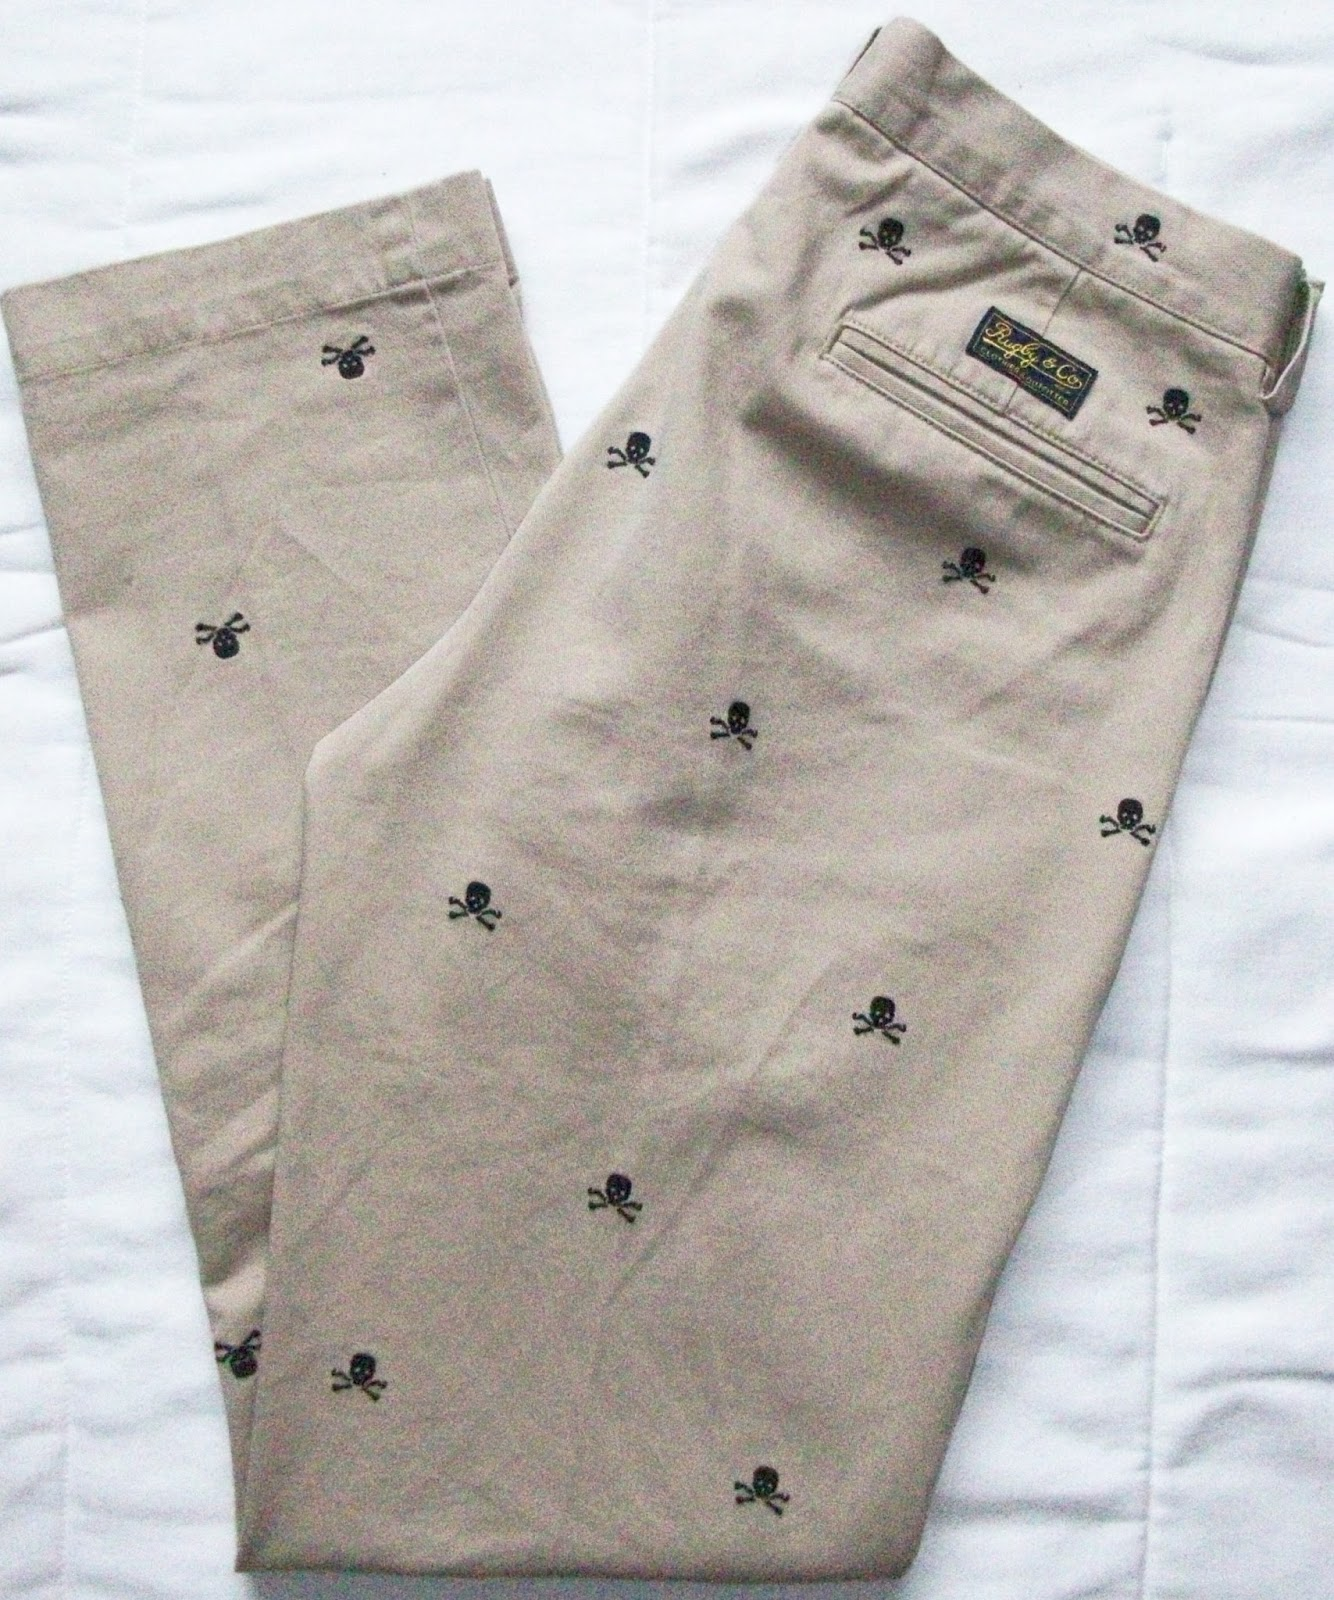 bfc2ae52b2 Today I was on a little shopping trip. My aim was to make a few bargains.  The coolest pants ever - my new chinos with many small skulls from Rugby by  Ralph ...